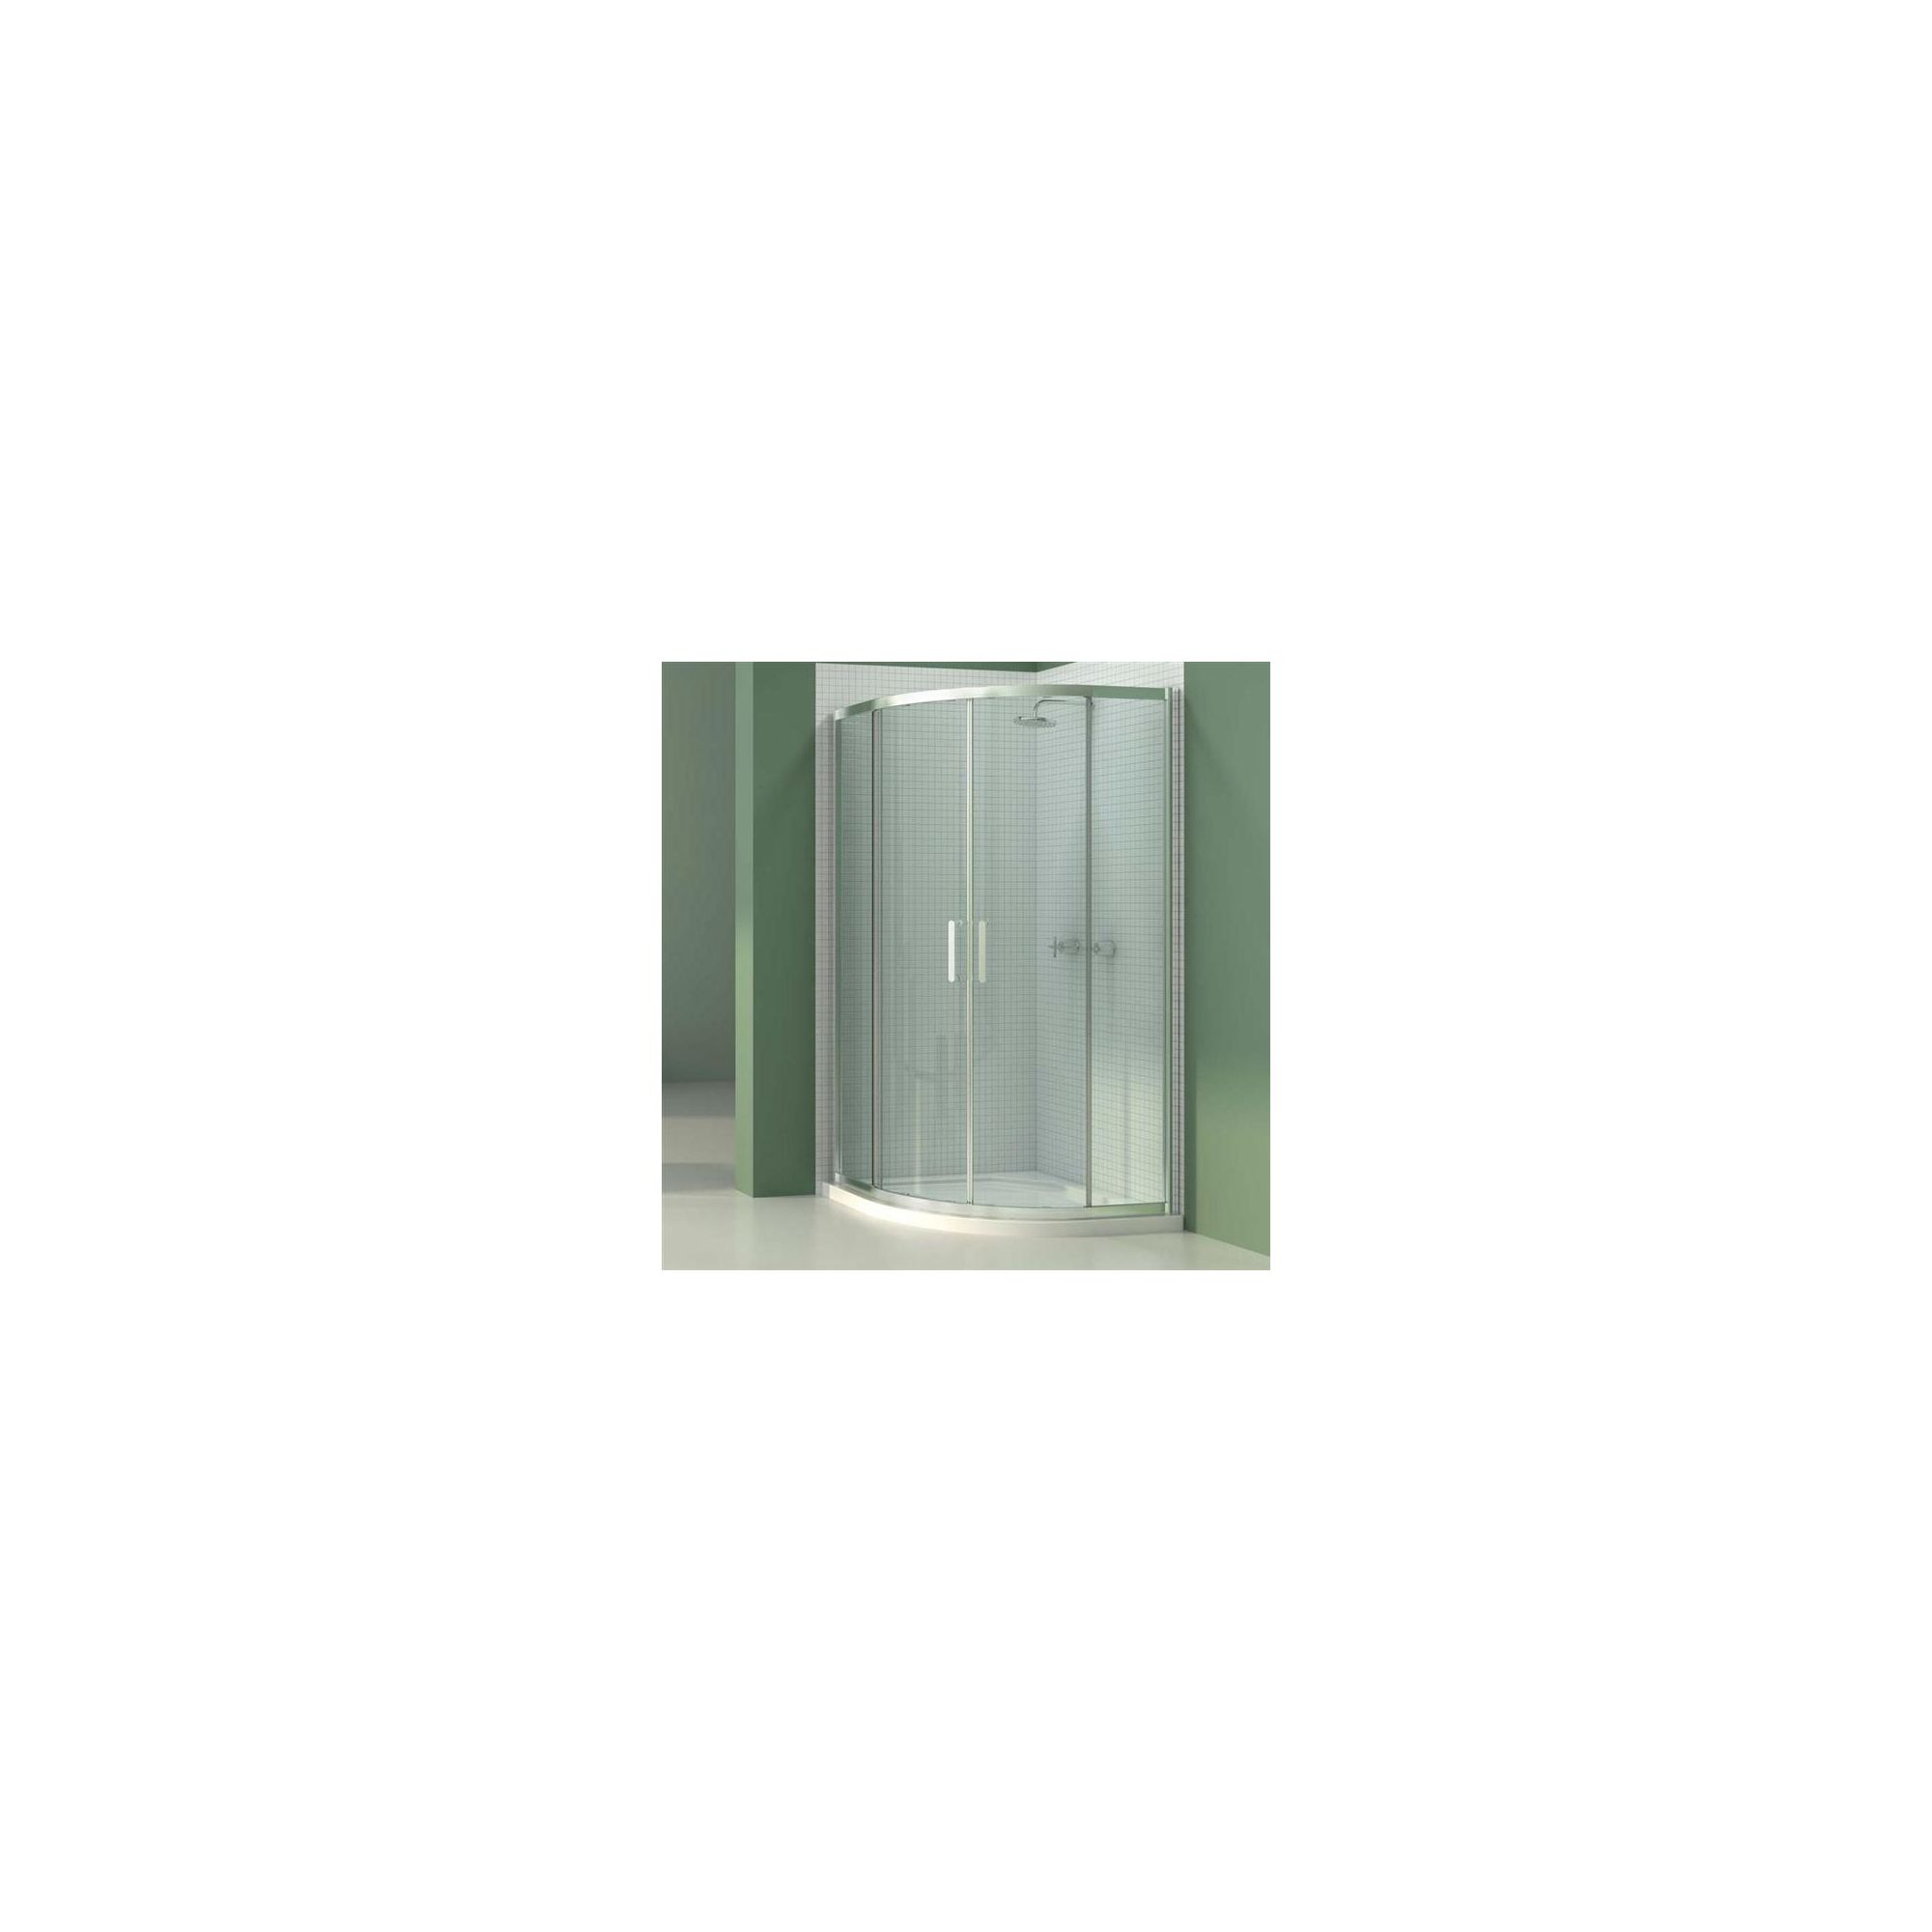 Merlyn Vivid Six Quadrant Shower Enclosure, 800mm x 800mm, Low Profile Tray, 6mm Glass at Tescos Direct